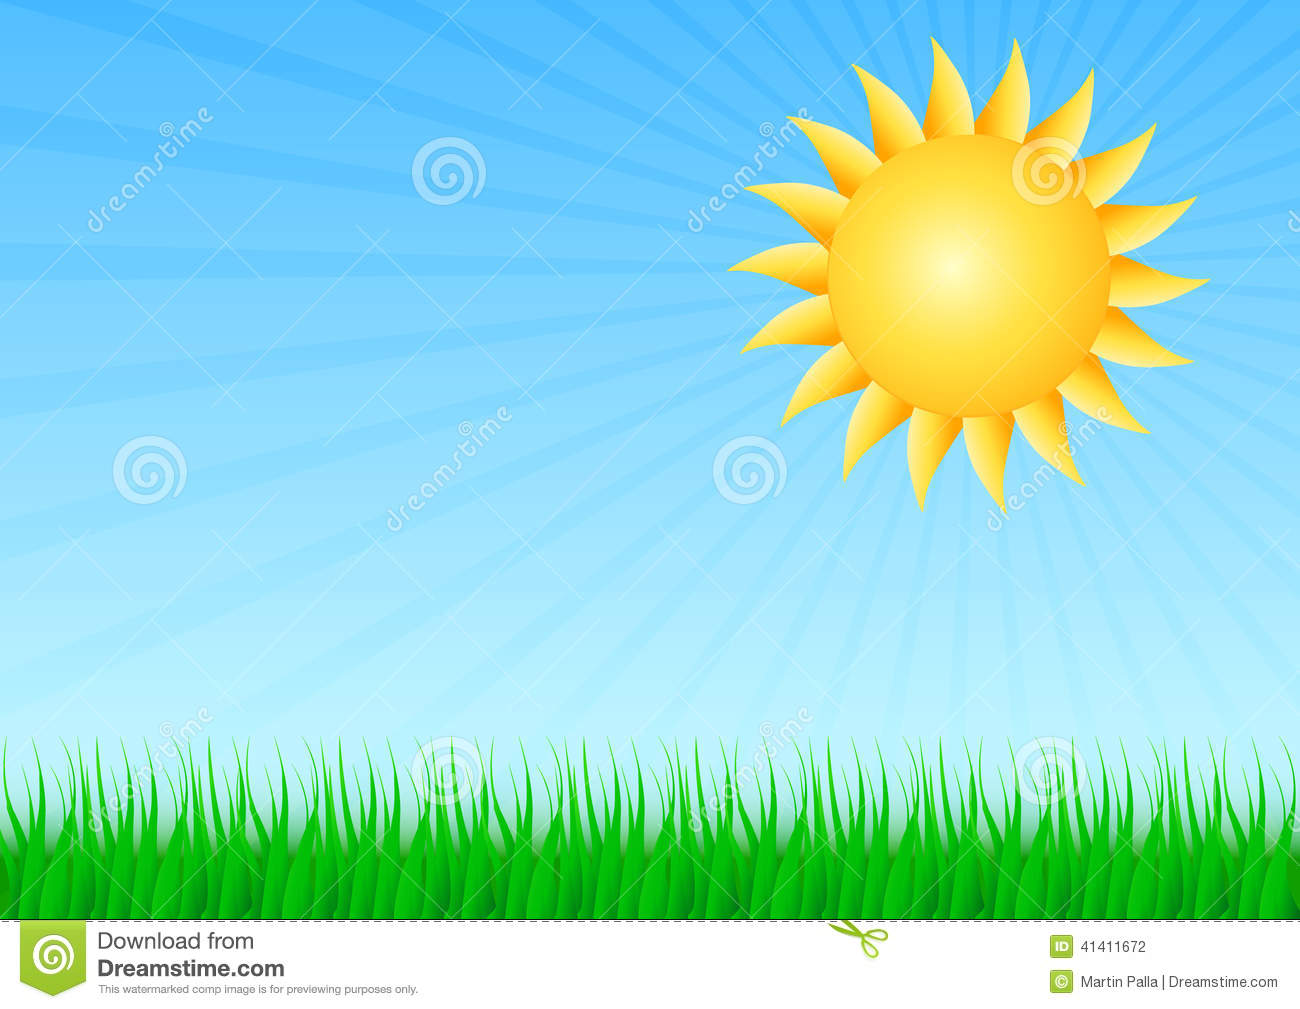 Sun with grass stock illustration. Illustration of natural ...